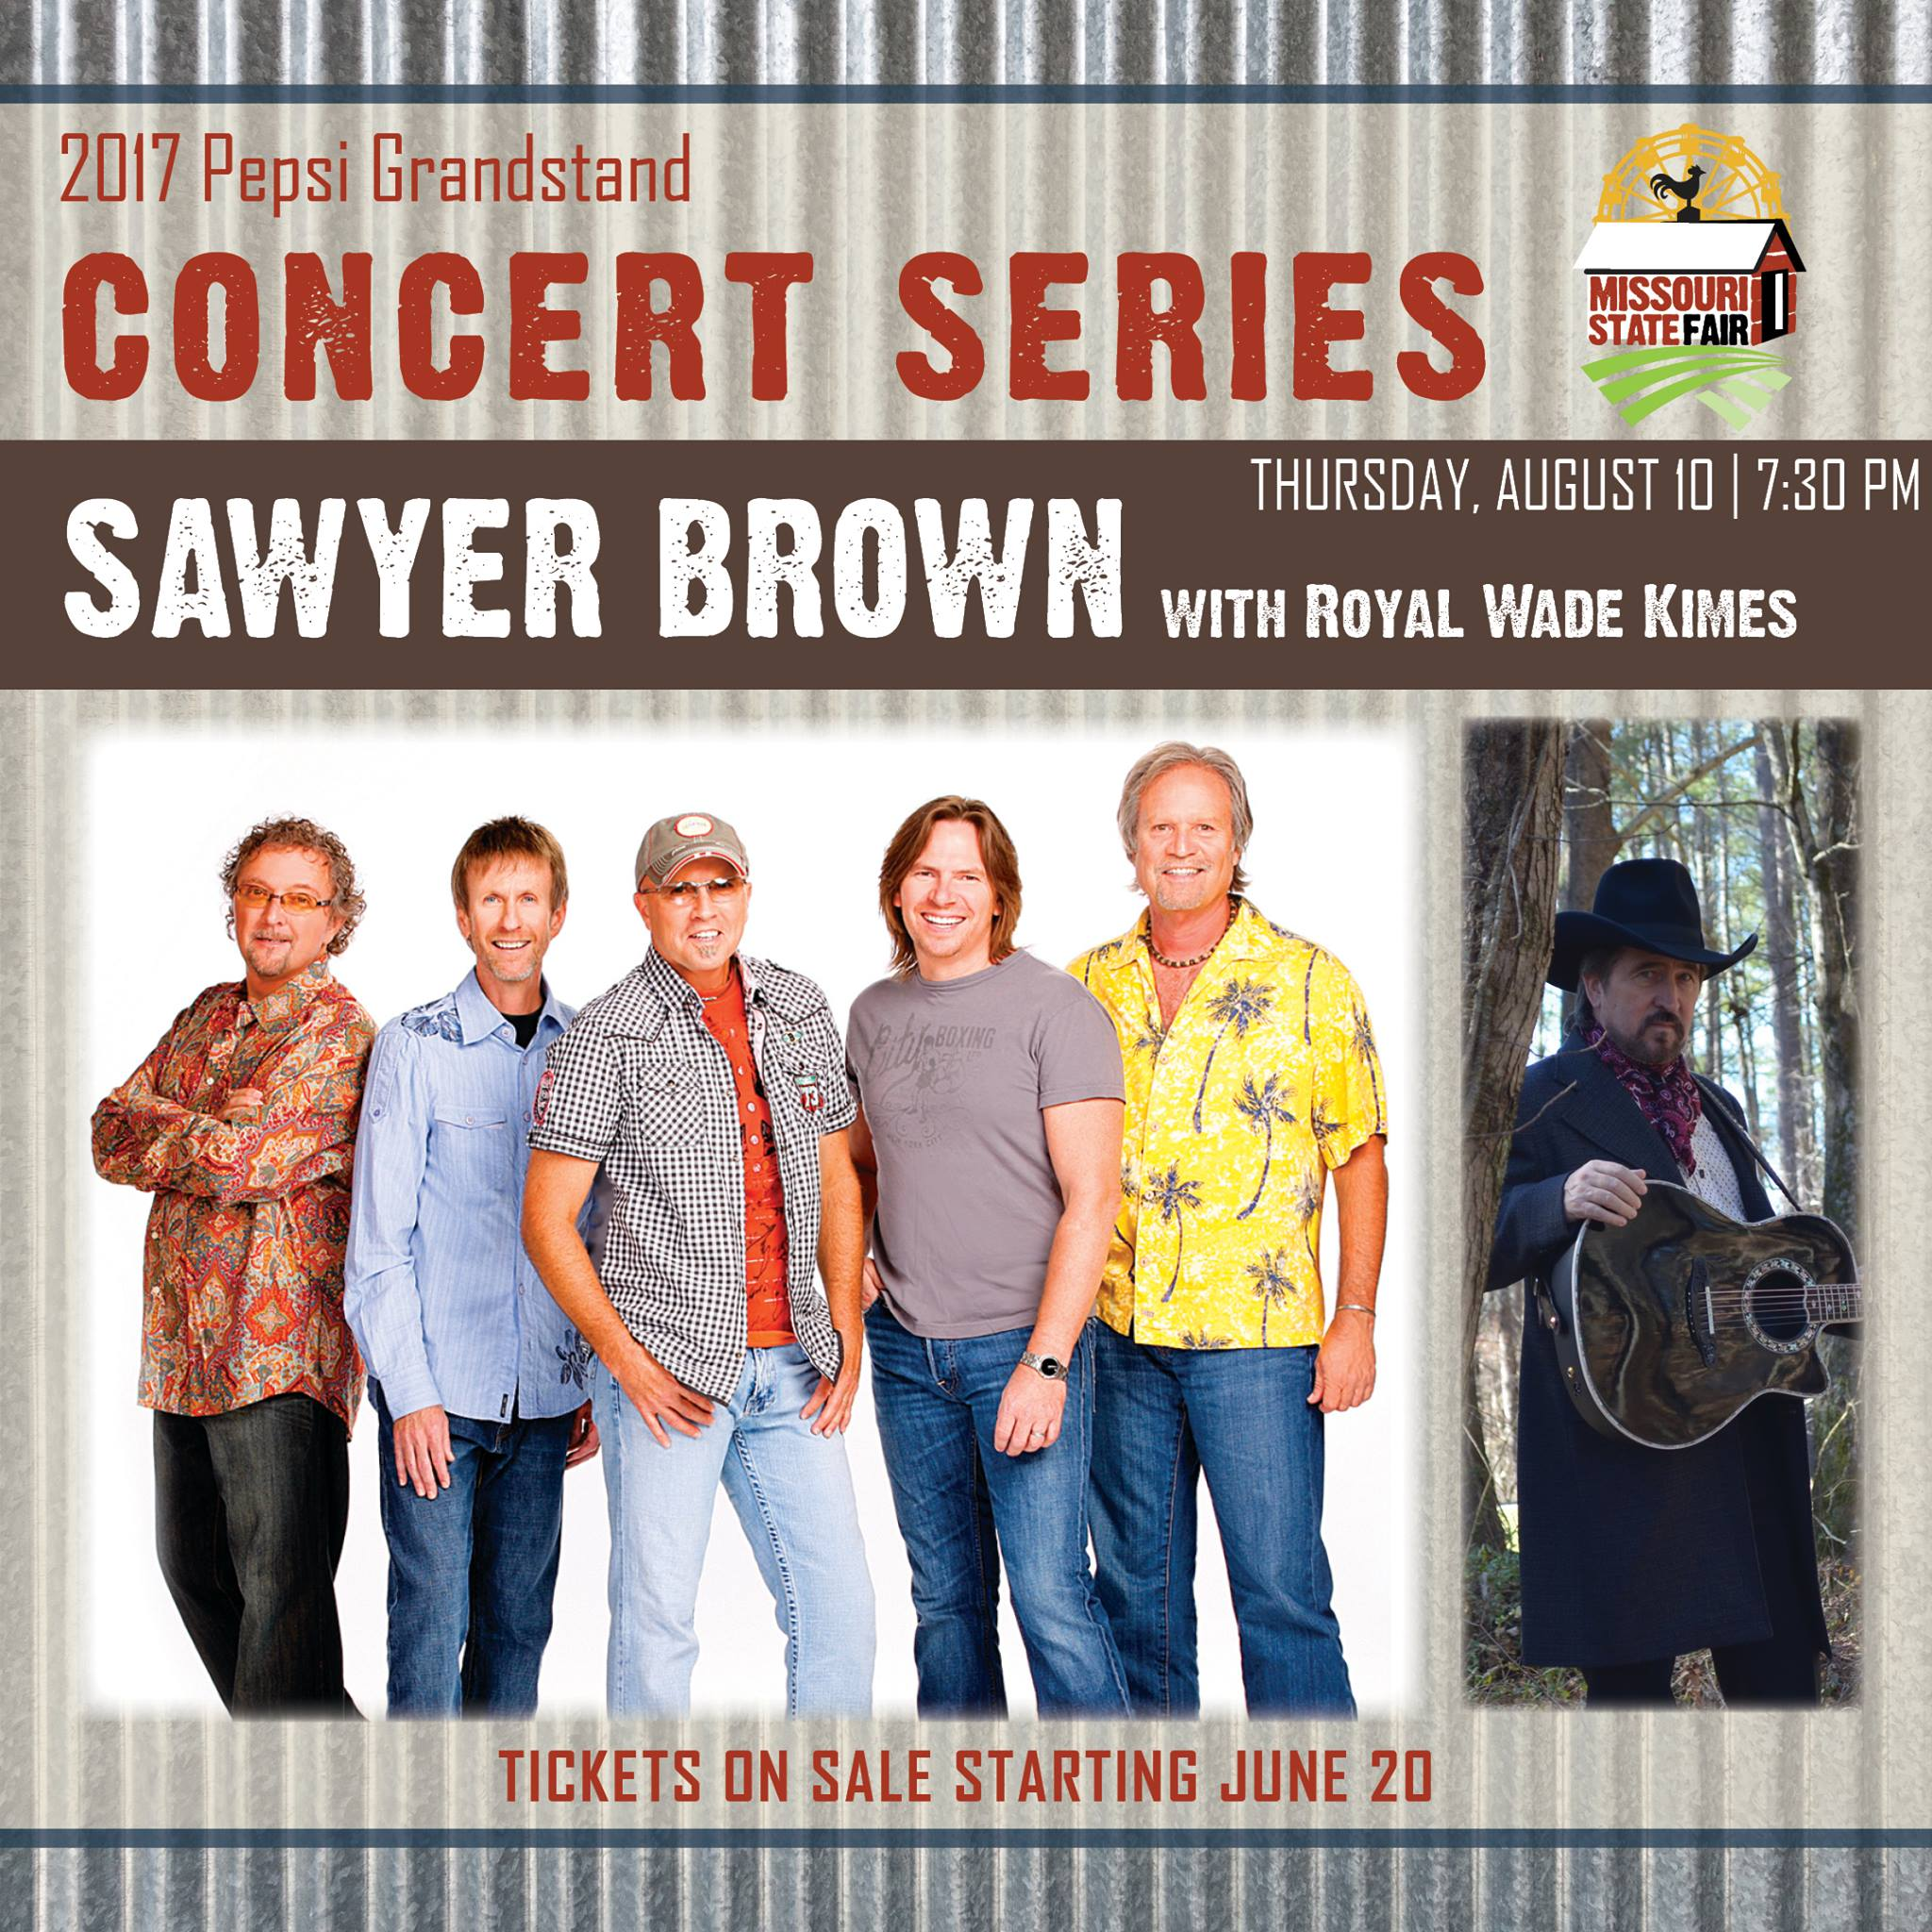 Sawyer Brown to open Missouri State Fair